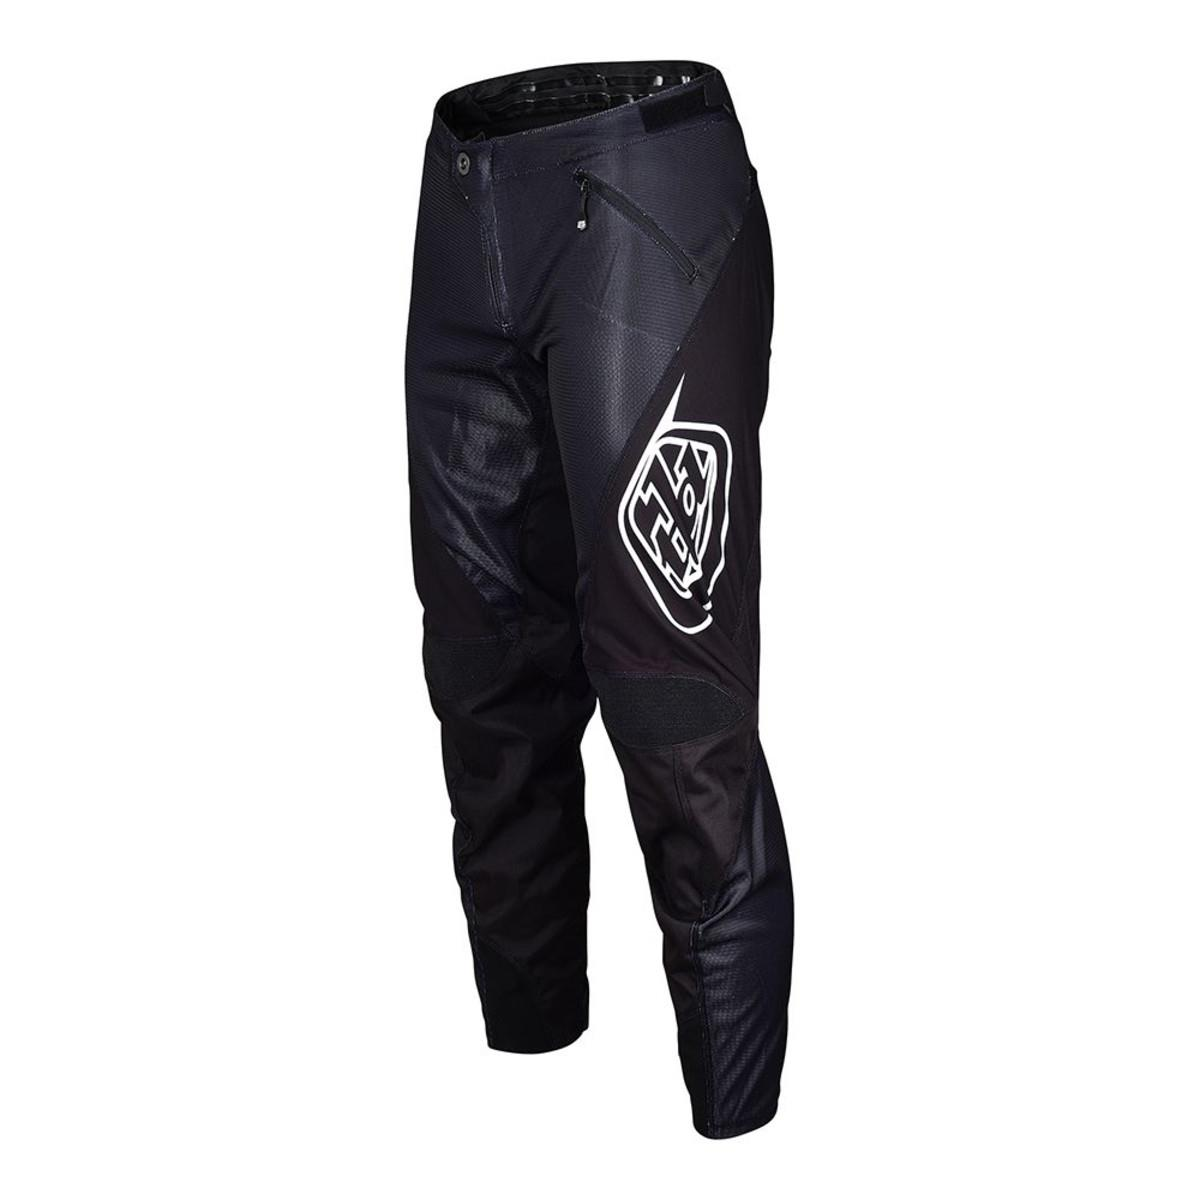 TROY LEE DESIGNS SPRINT YOUTH PANT BLK